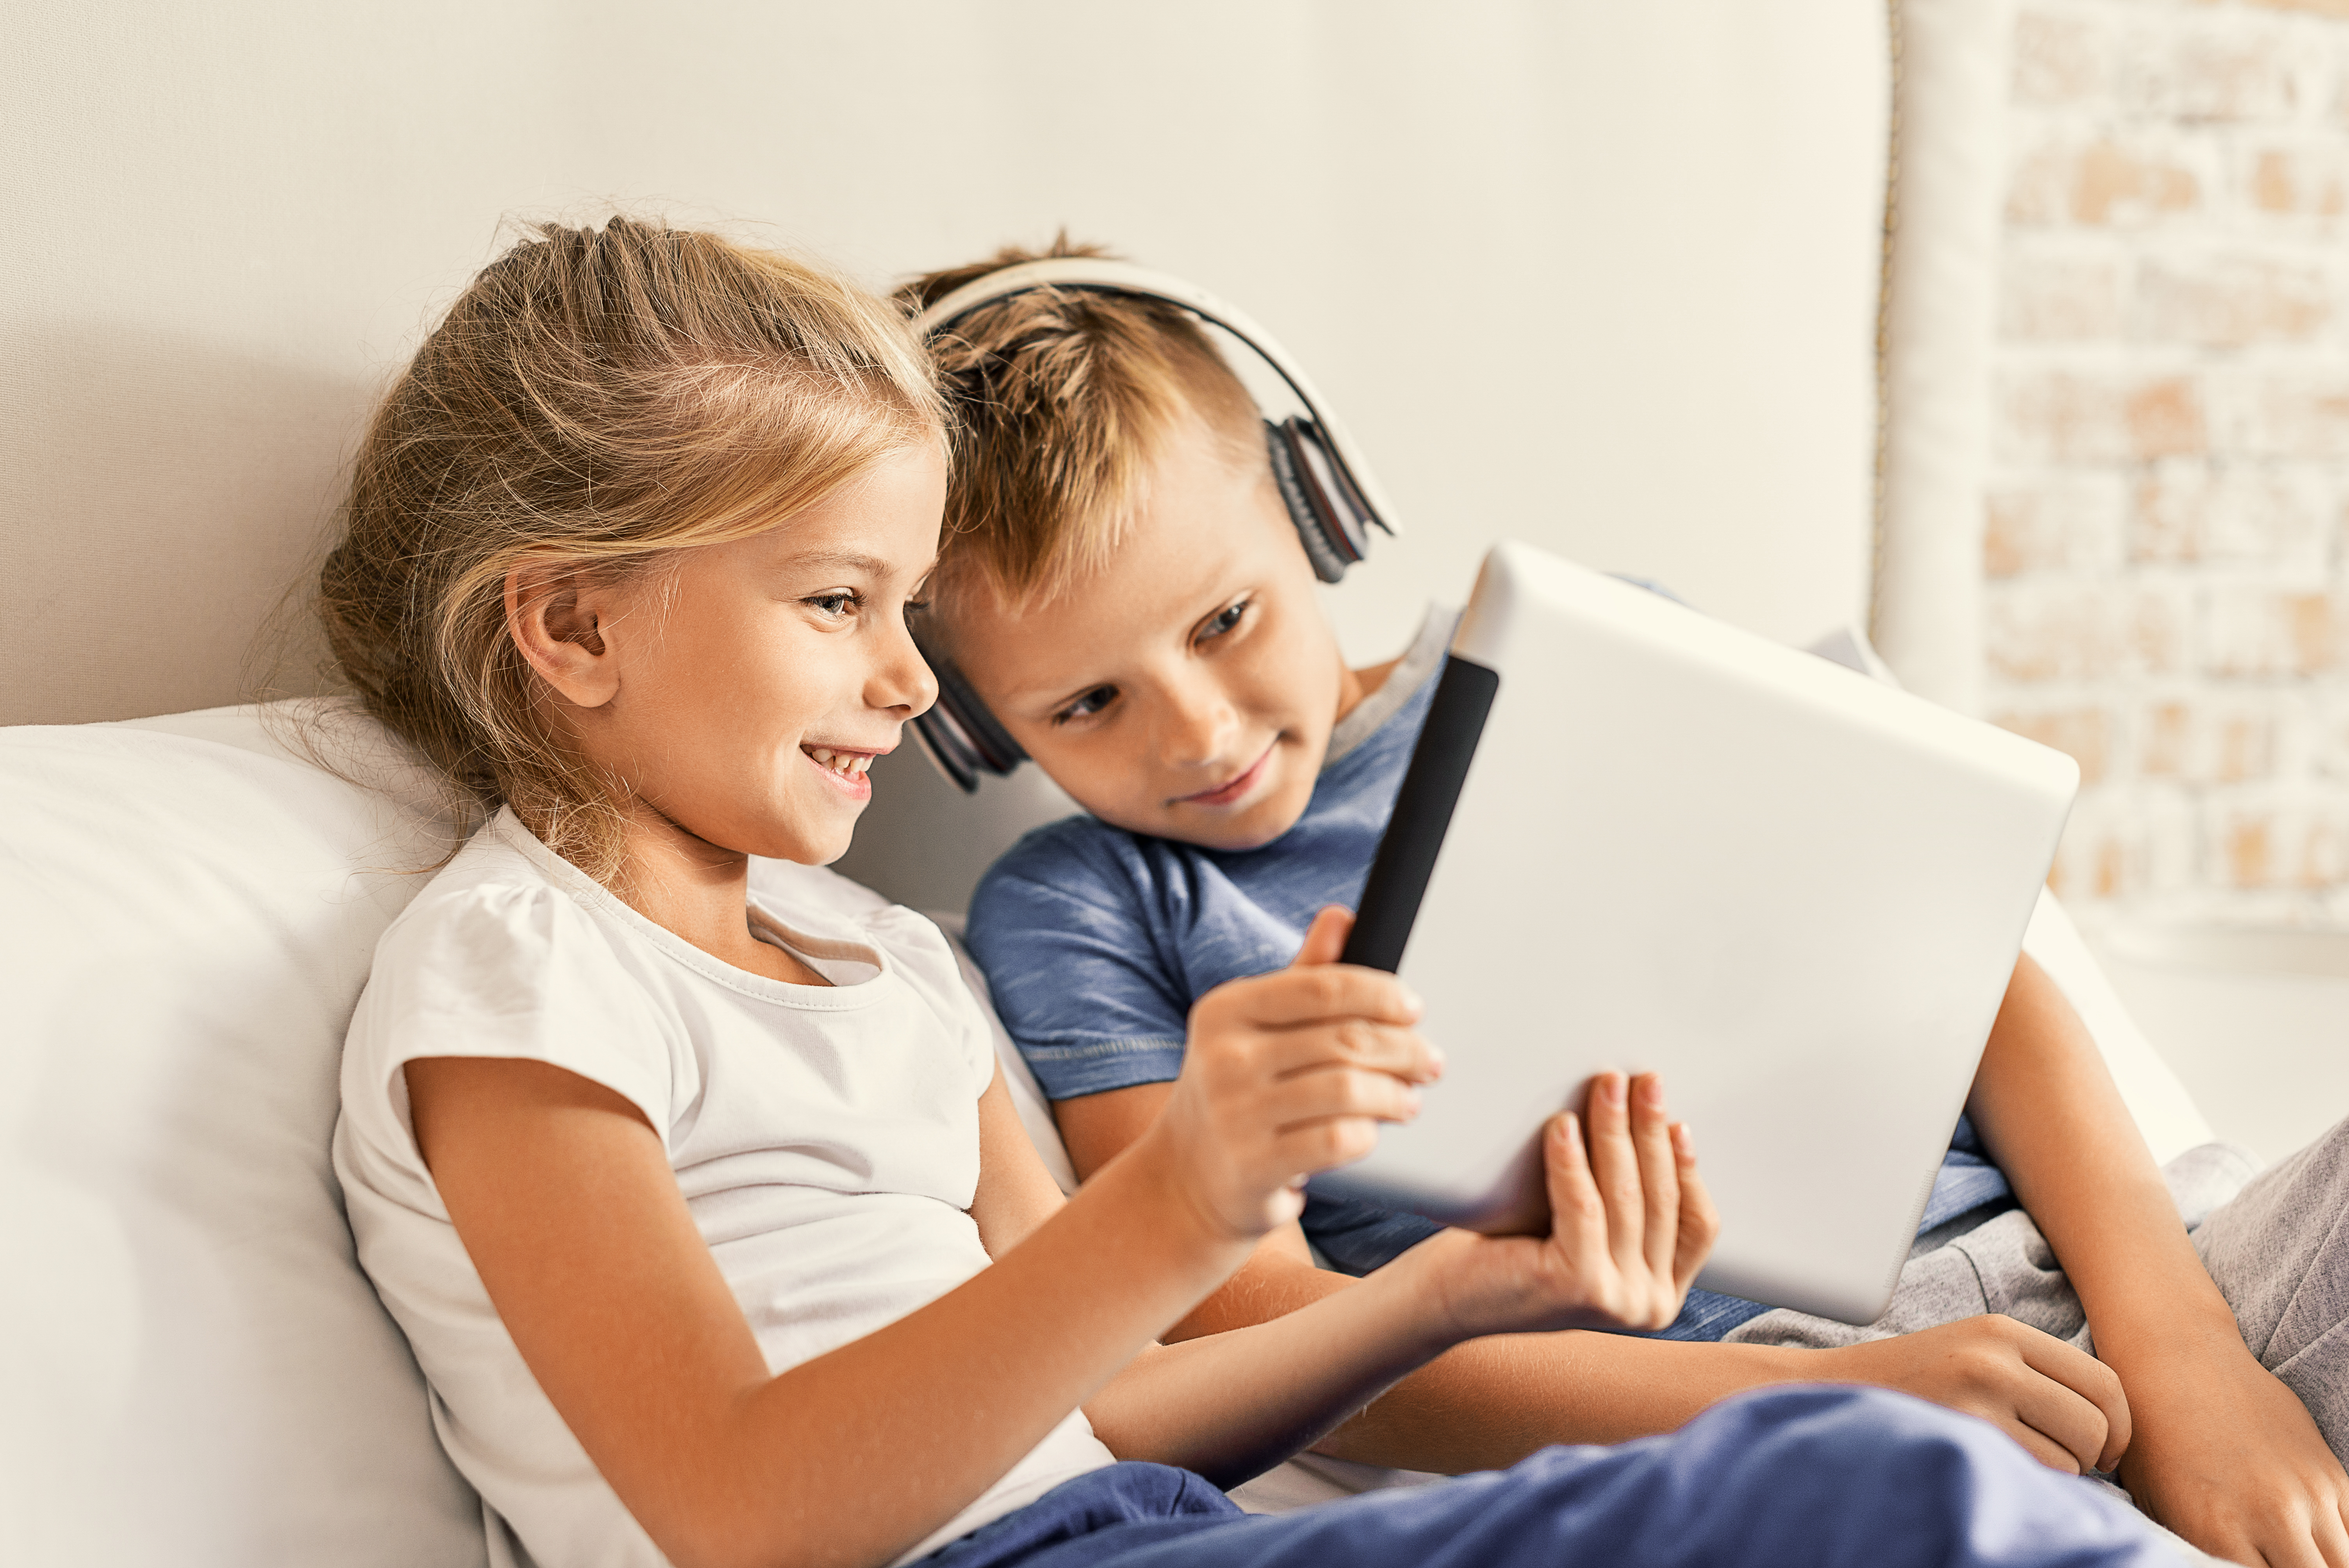 audiobooks for carers and people with disabilities